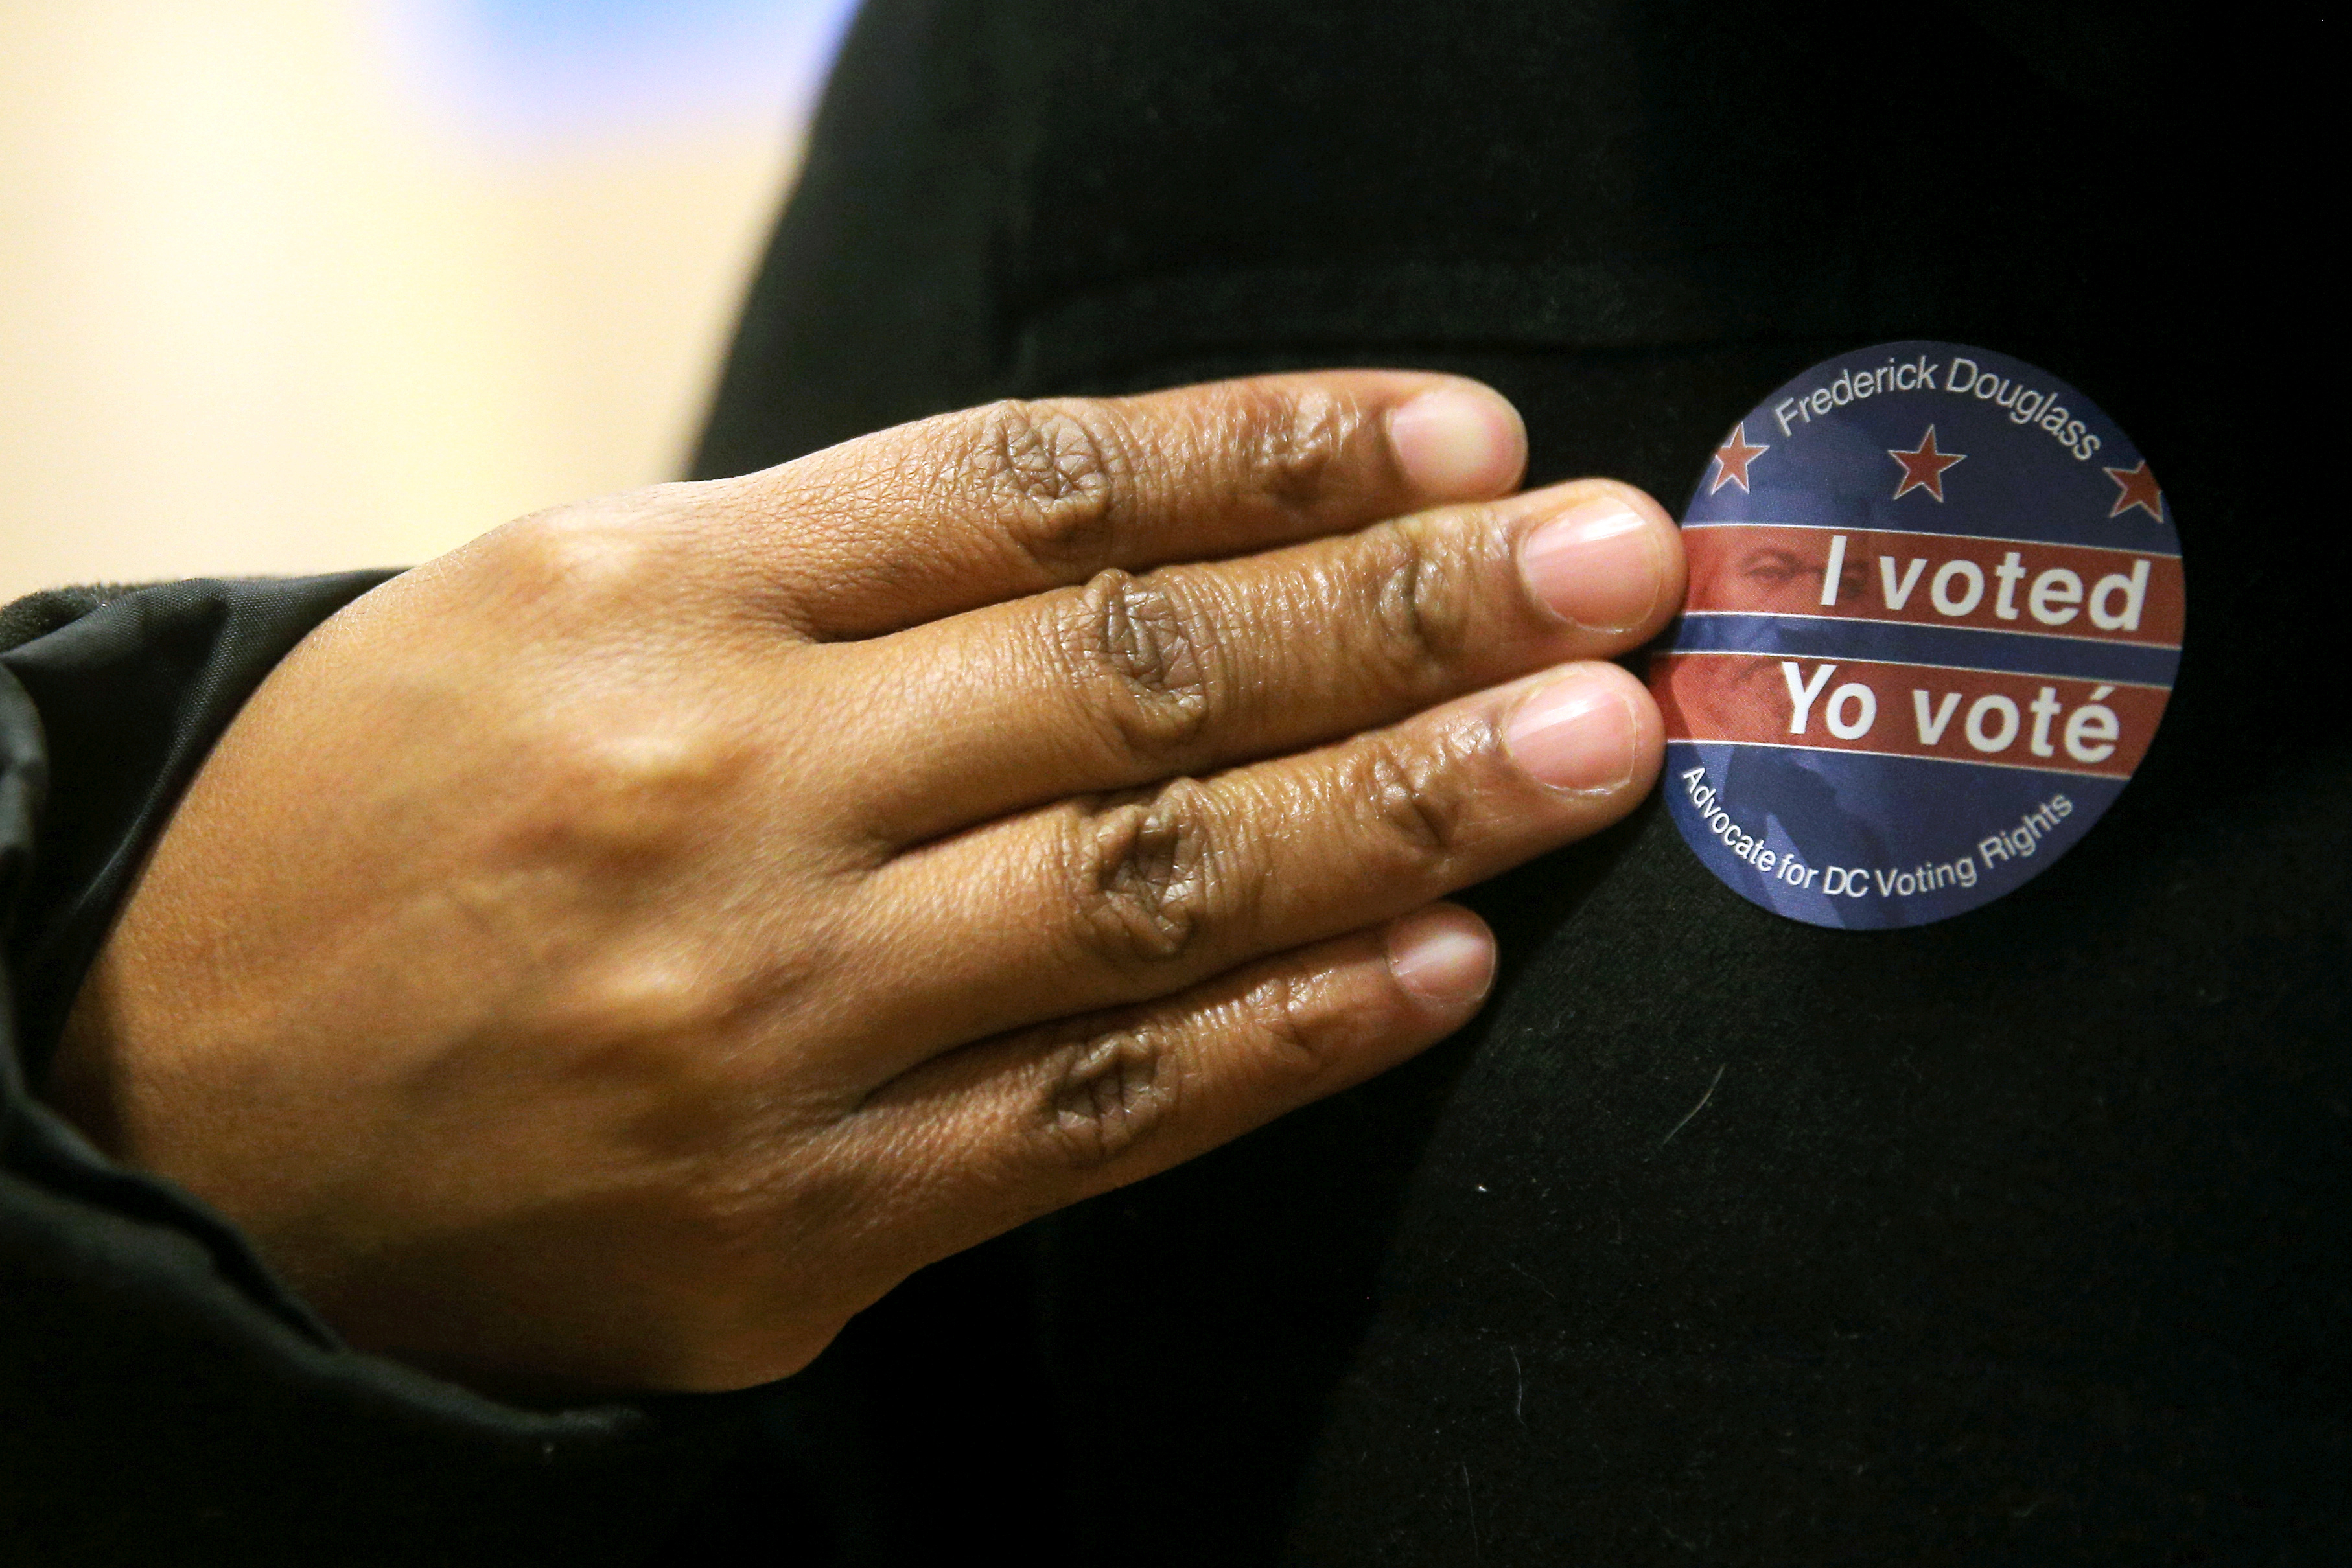 WASHINGTON D.C., UNITED STATES — NOVEMBER 2, 2020: A voter wears a bilingual I voted sticker at the University of the District of Columbia (UDC) during early voting in the 2020 US presidential election. Yegor Aleyev/TASS.No use Russia.